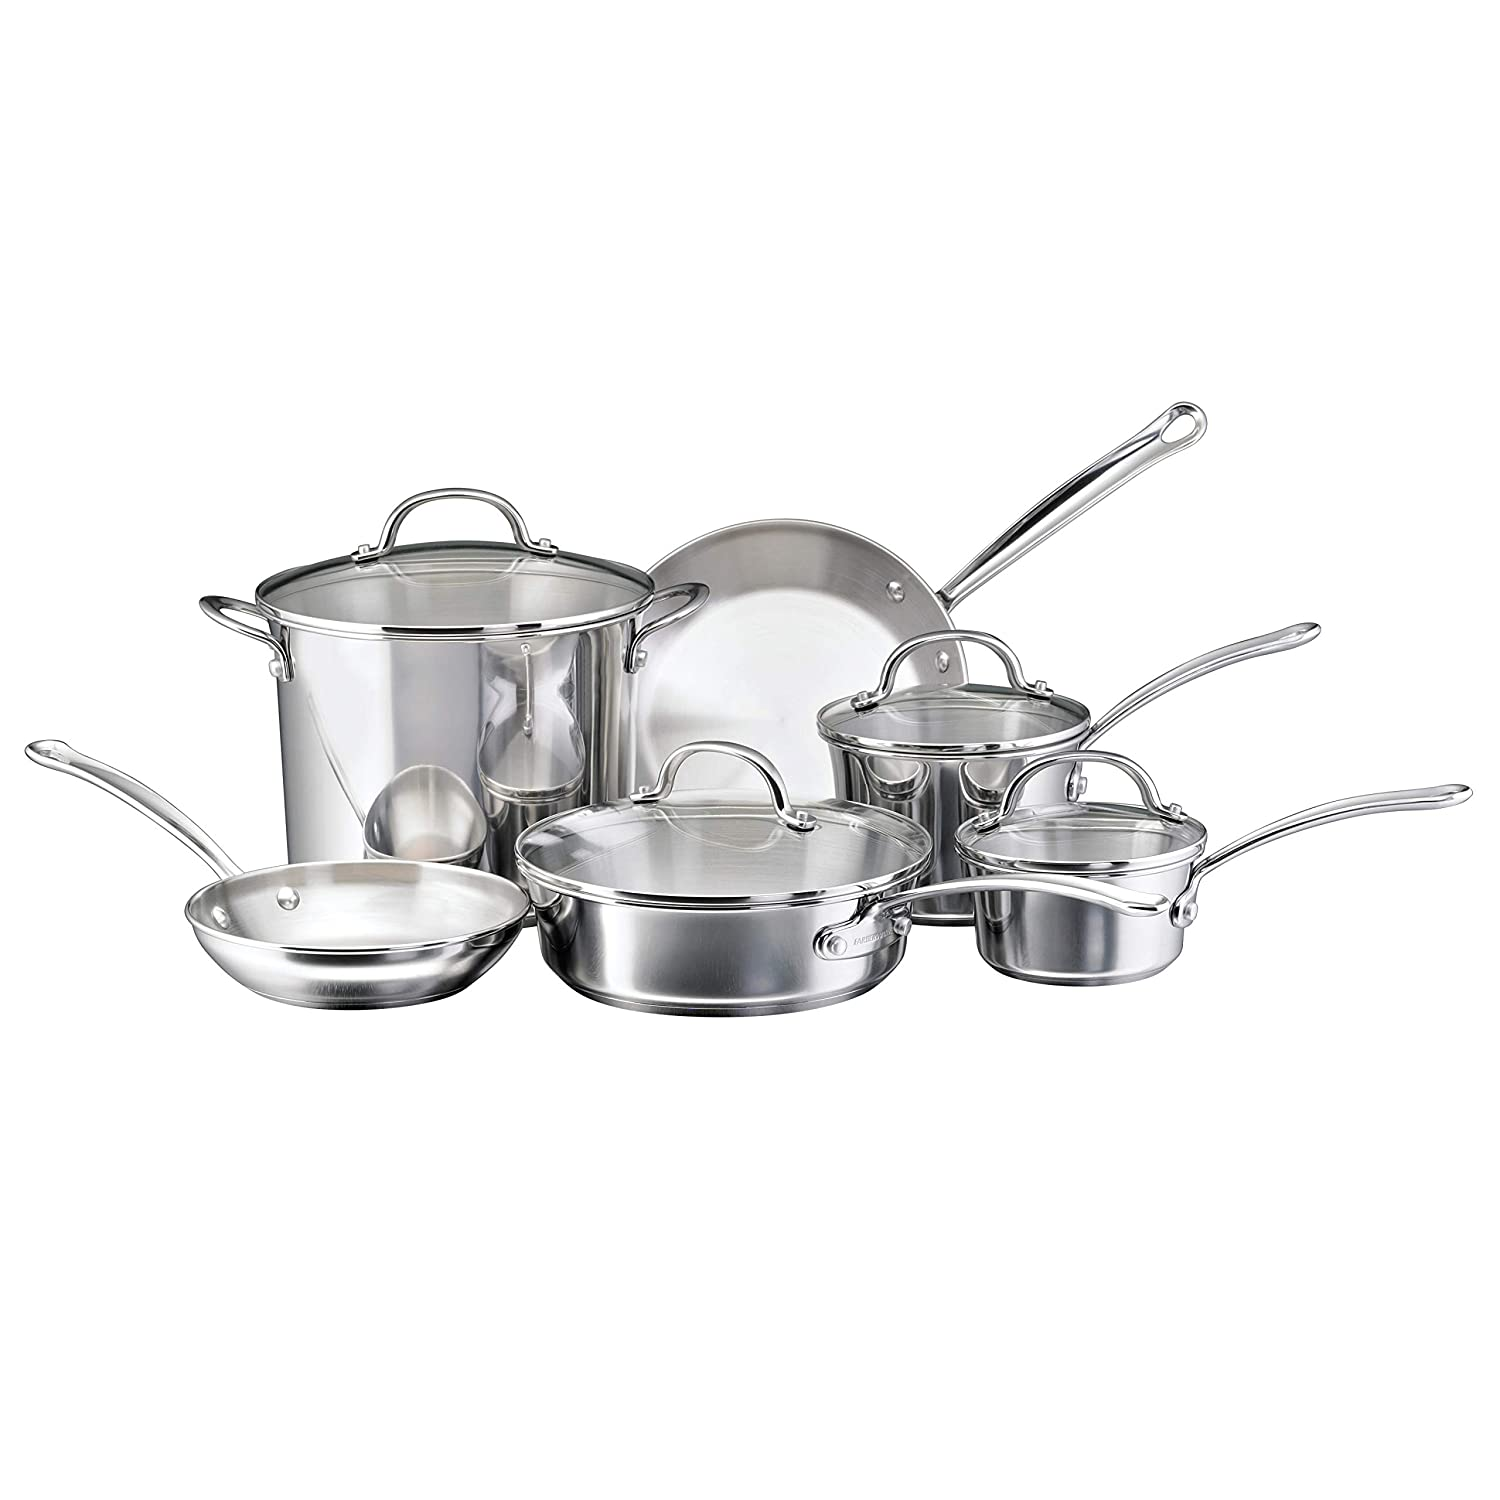 Farberware Millenium 10-piece Non-stick Pots and Pans Set